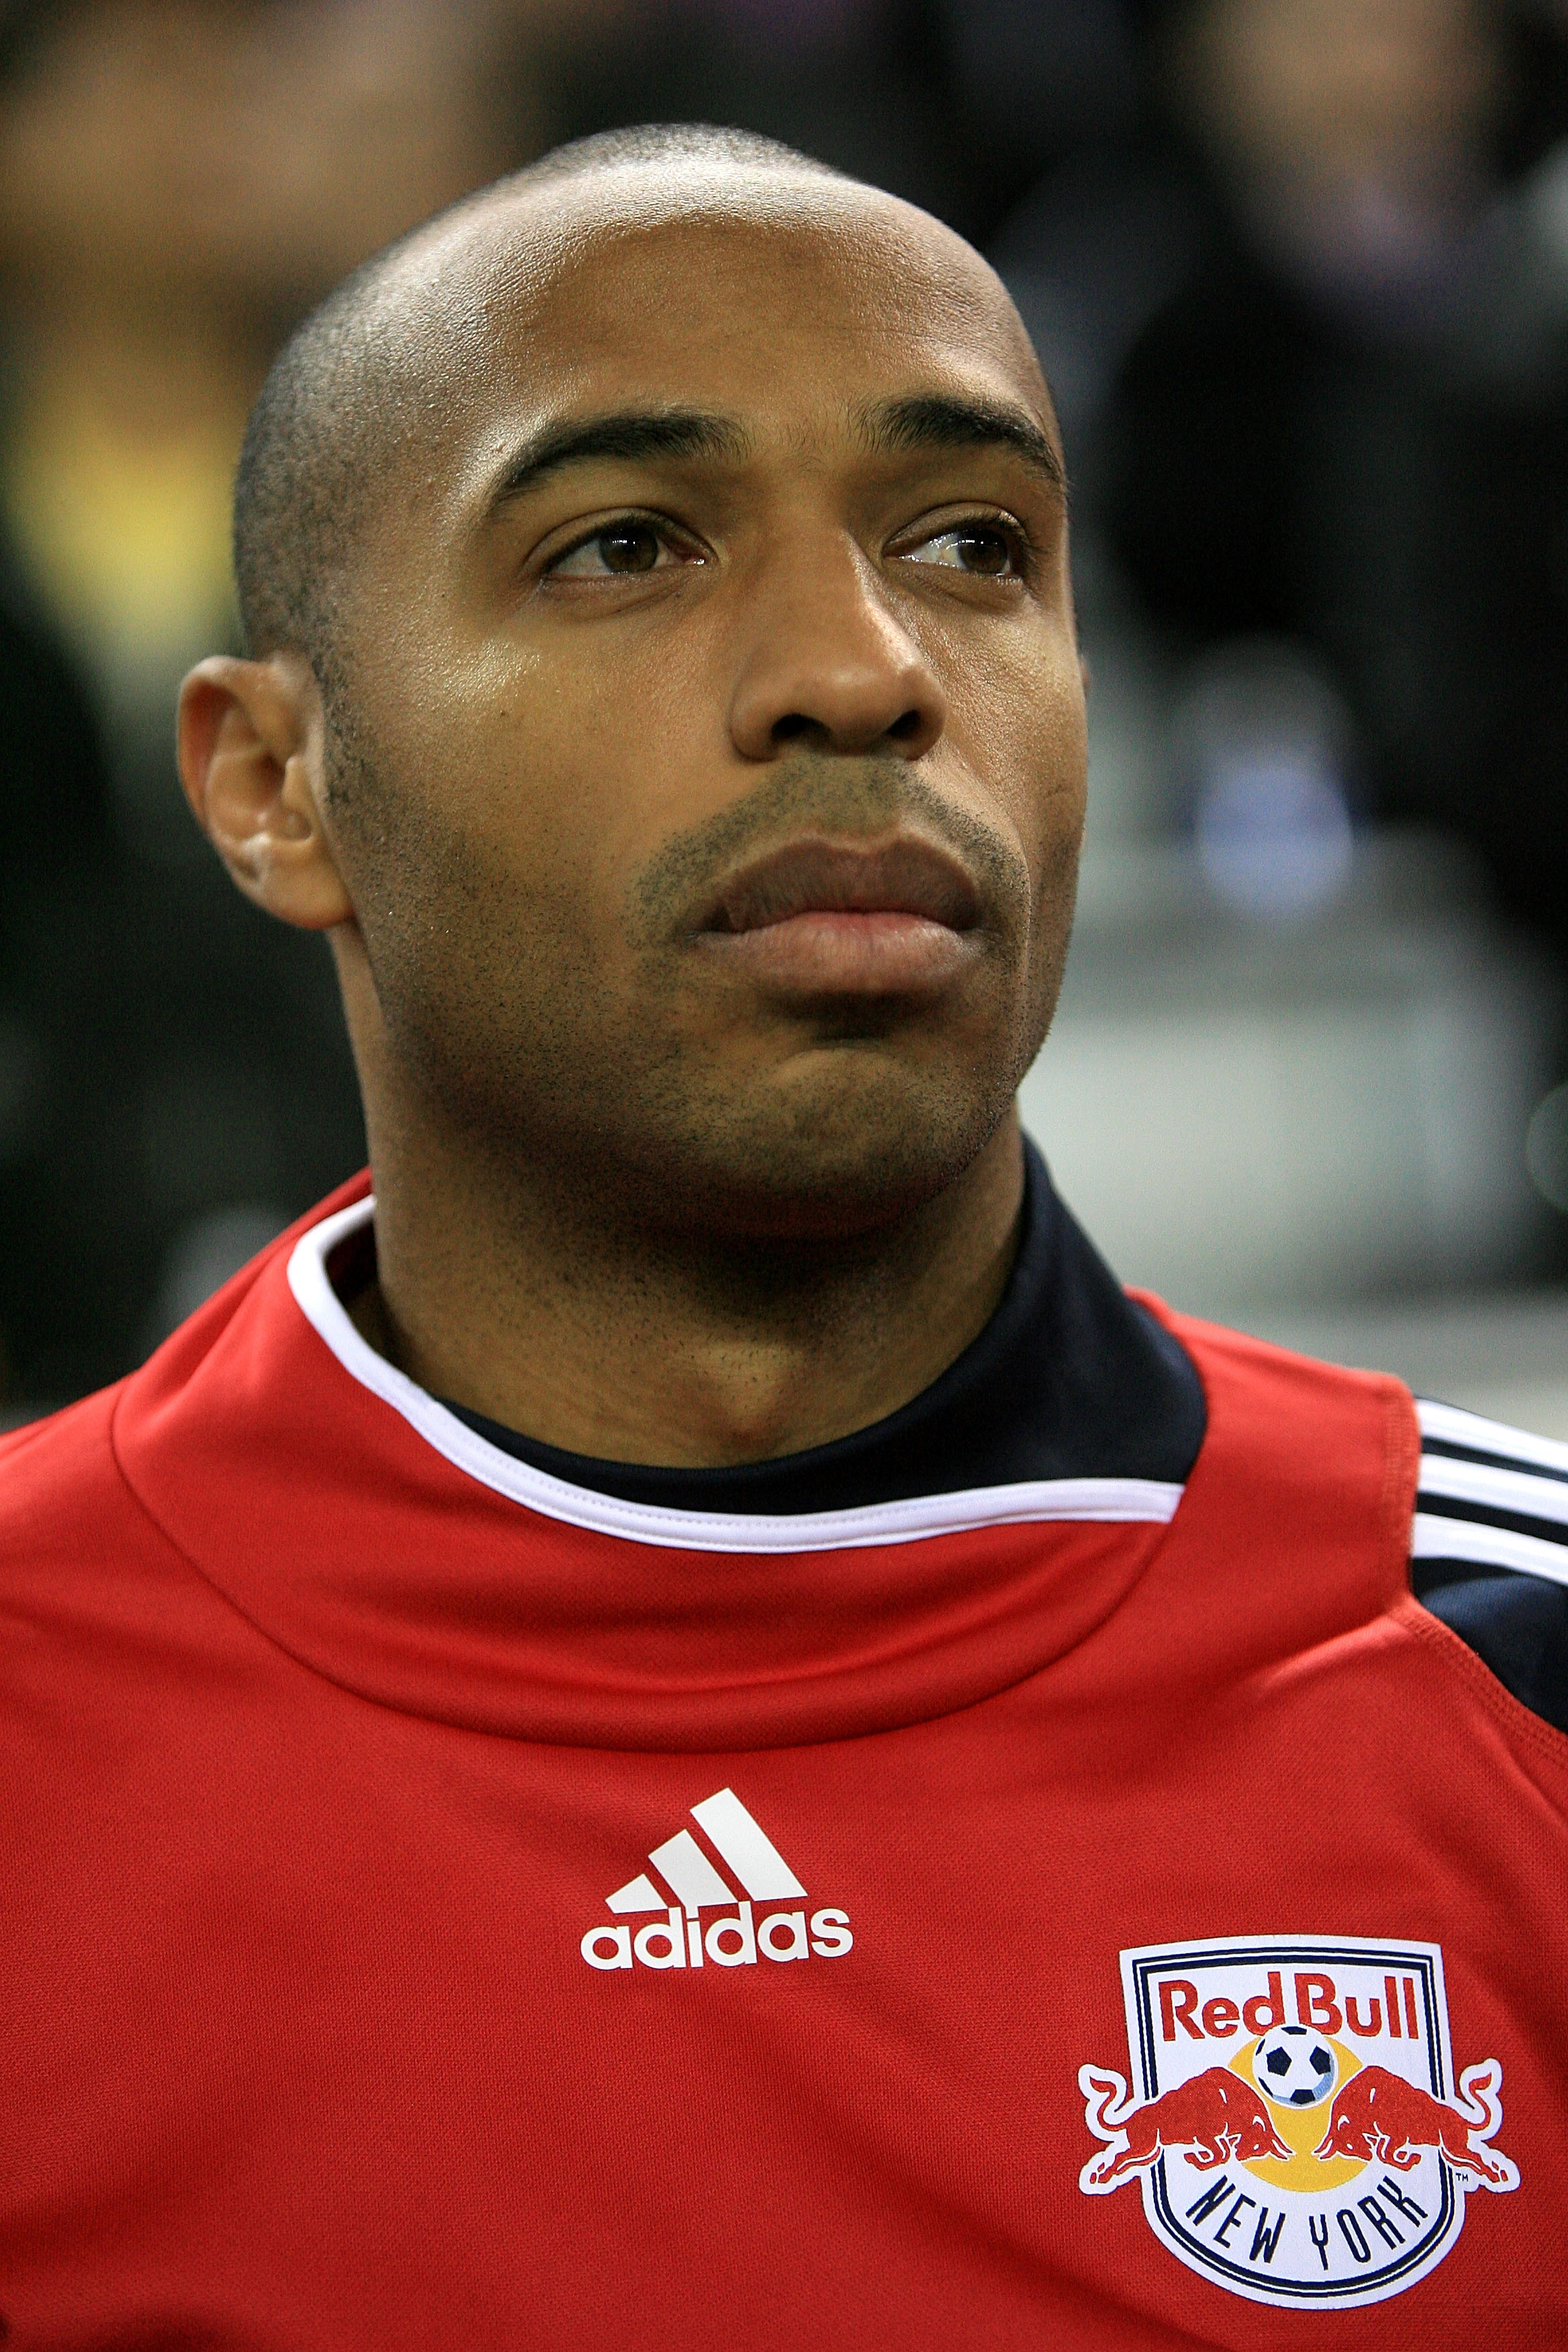 HARRISON, NJ - NOVEMBER 04: Thierry Henry #14 of the New York Red Bulls stands for the national anthem prior to the match against the San Jose Earthquakes during the second leg of the of the MLS playoffs at Red Bull Arena on November 4, 2010 in Harrison,